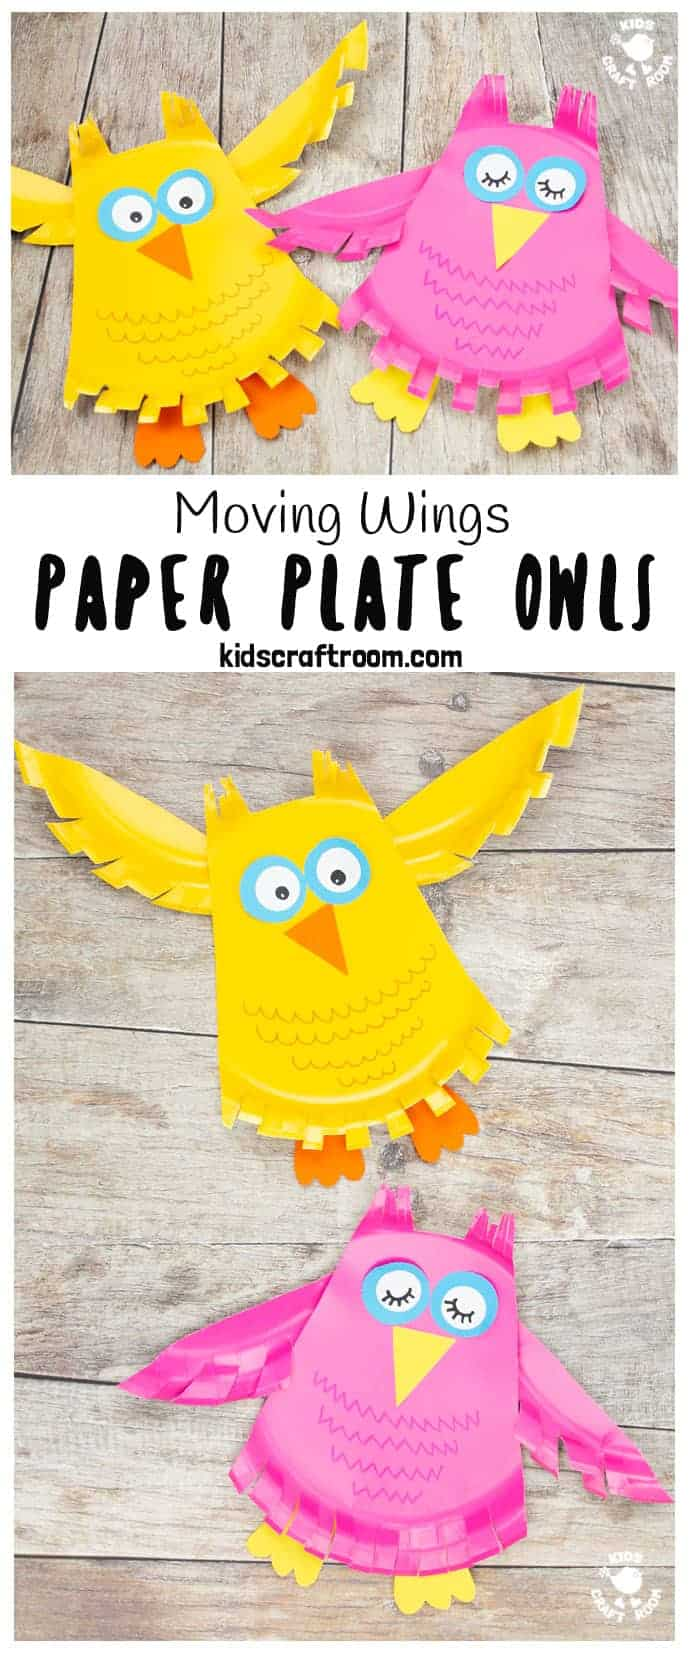 Paper plate owl craft pin image